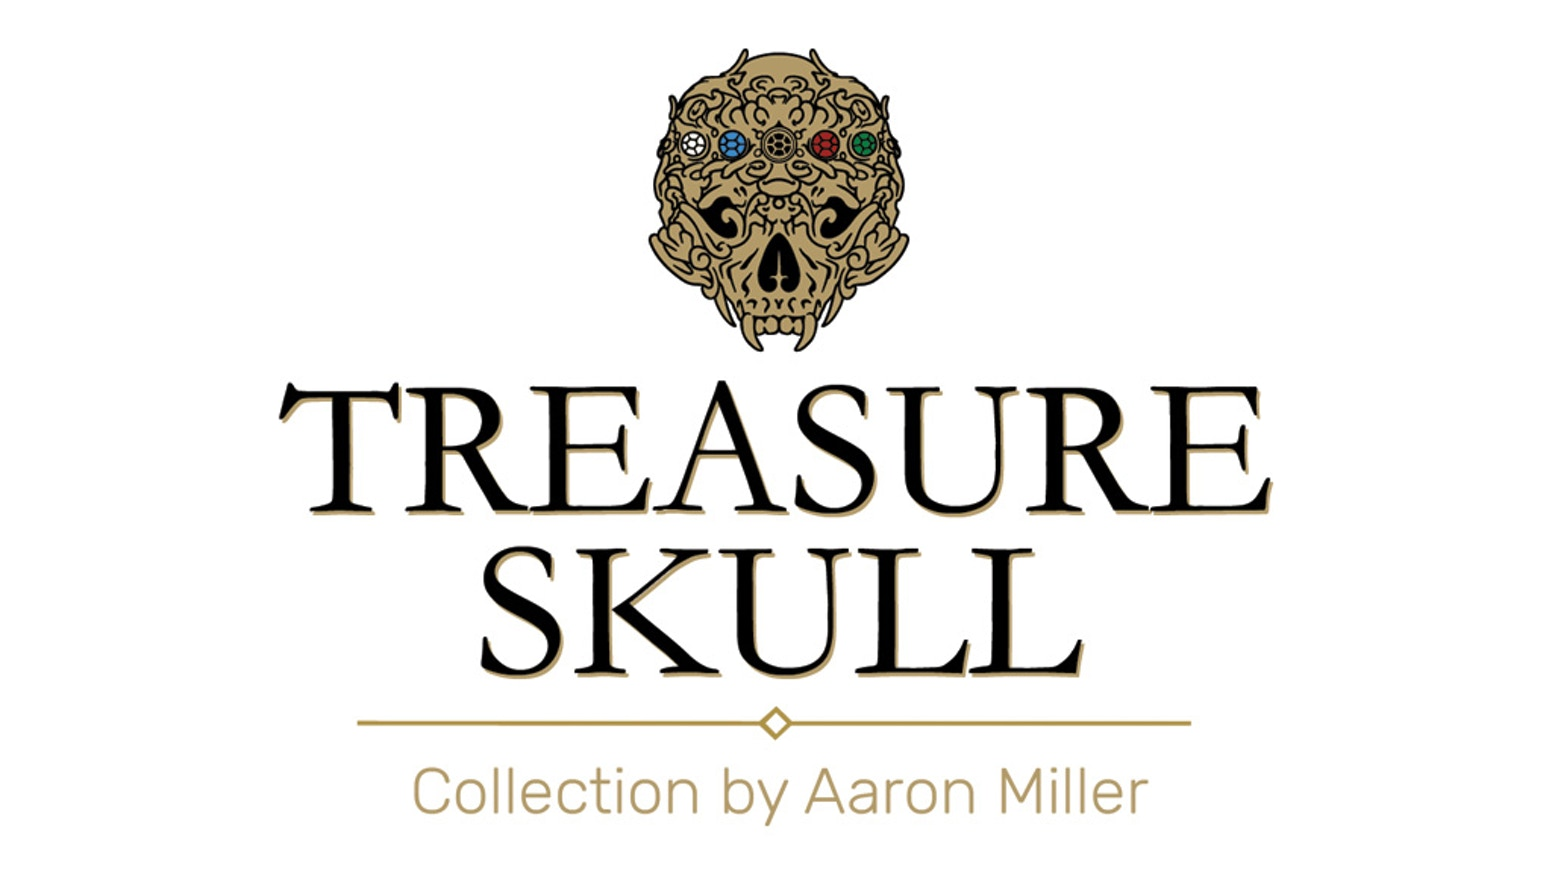 Magic:The Gathering Artist Aaron B. Miller is creating Treasure Skull Pins, Pendants, Brooches, and Dice Bags.